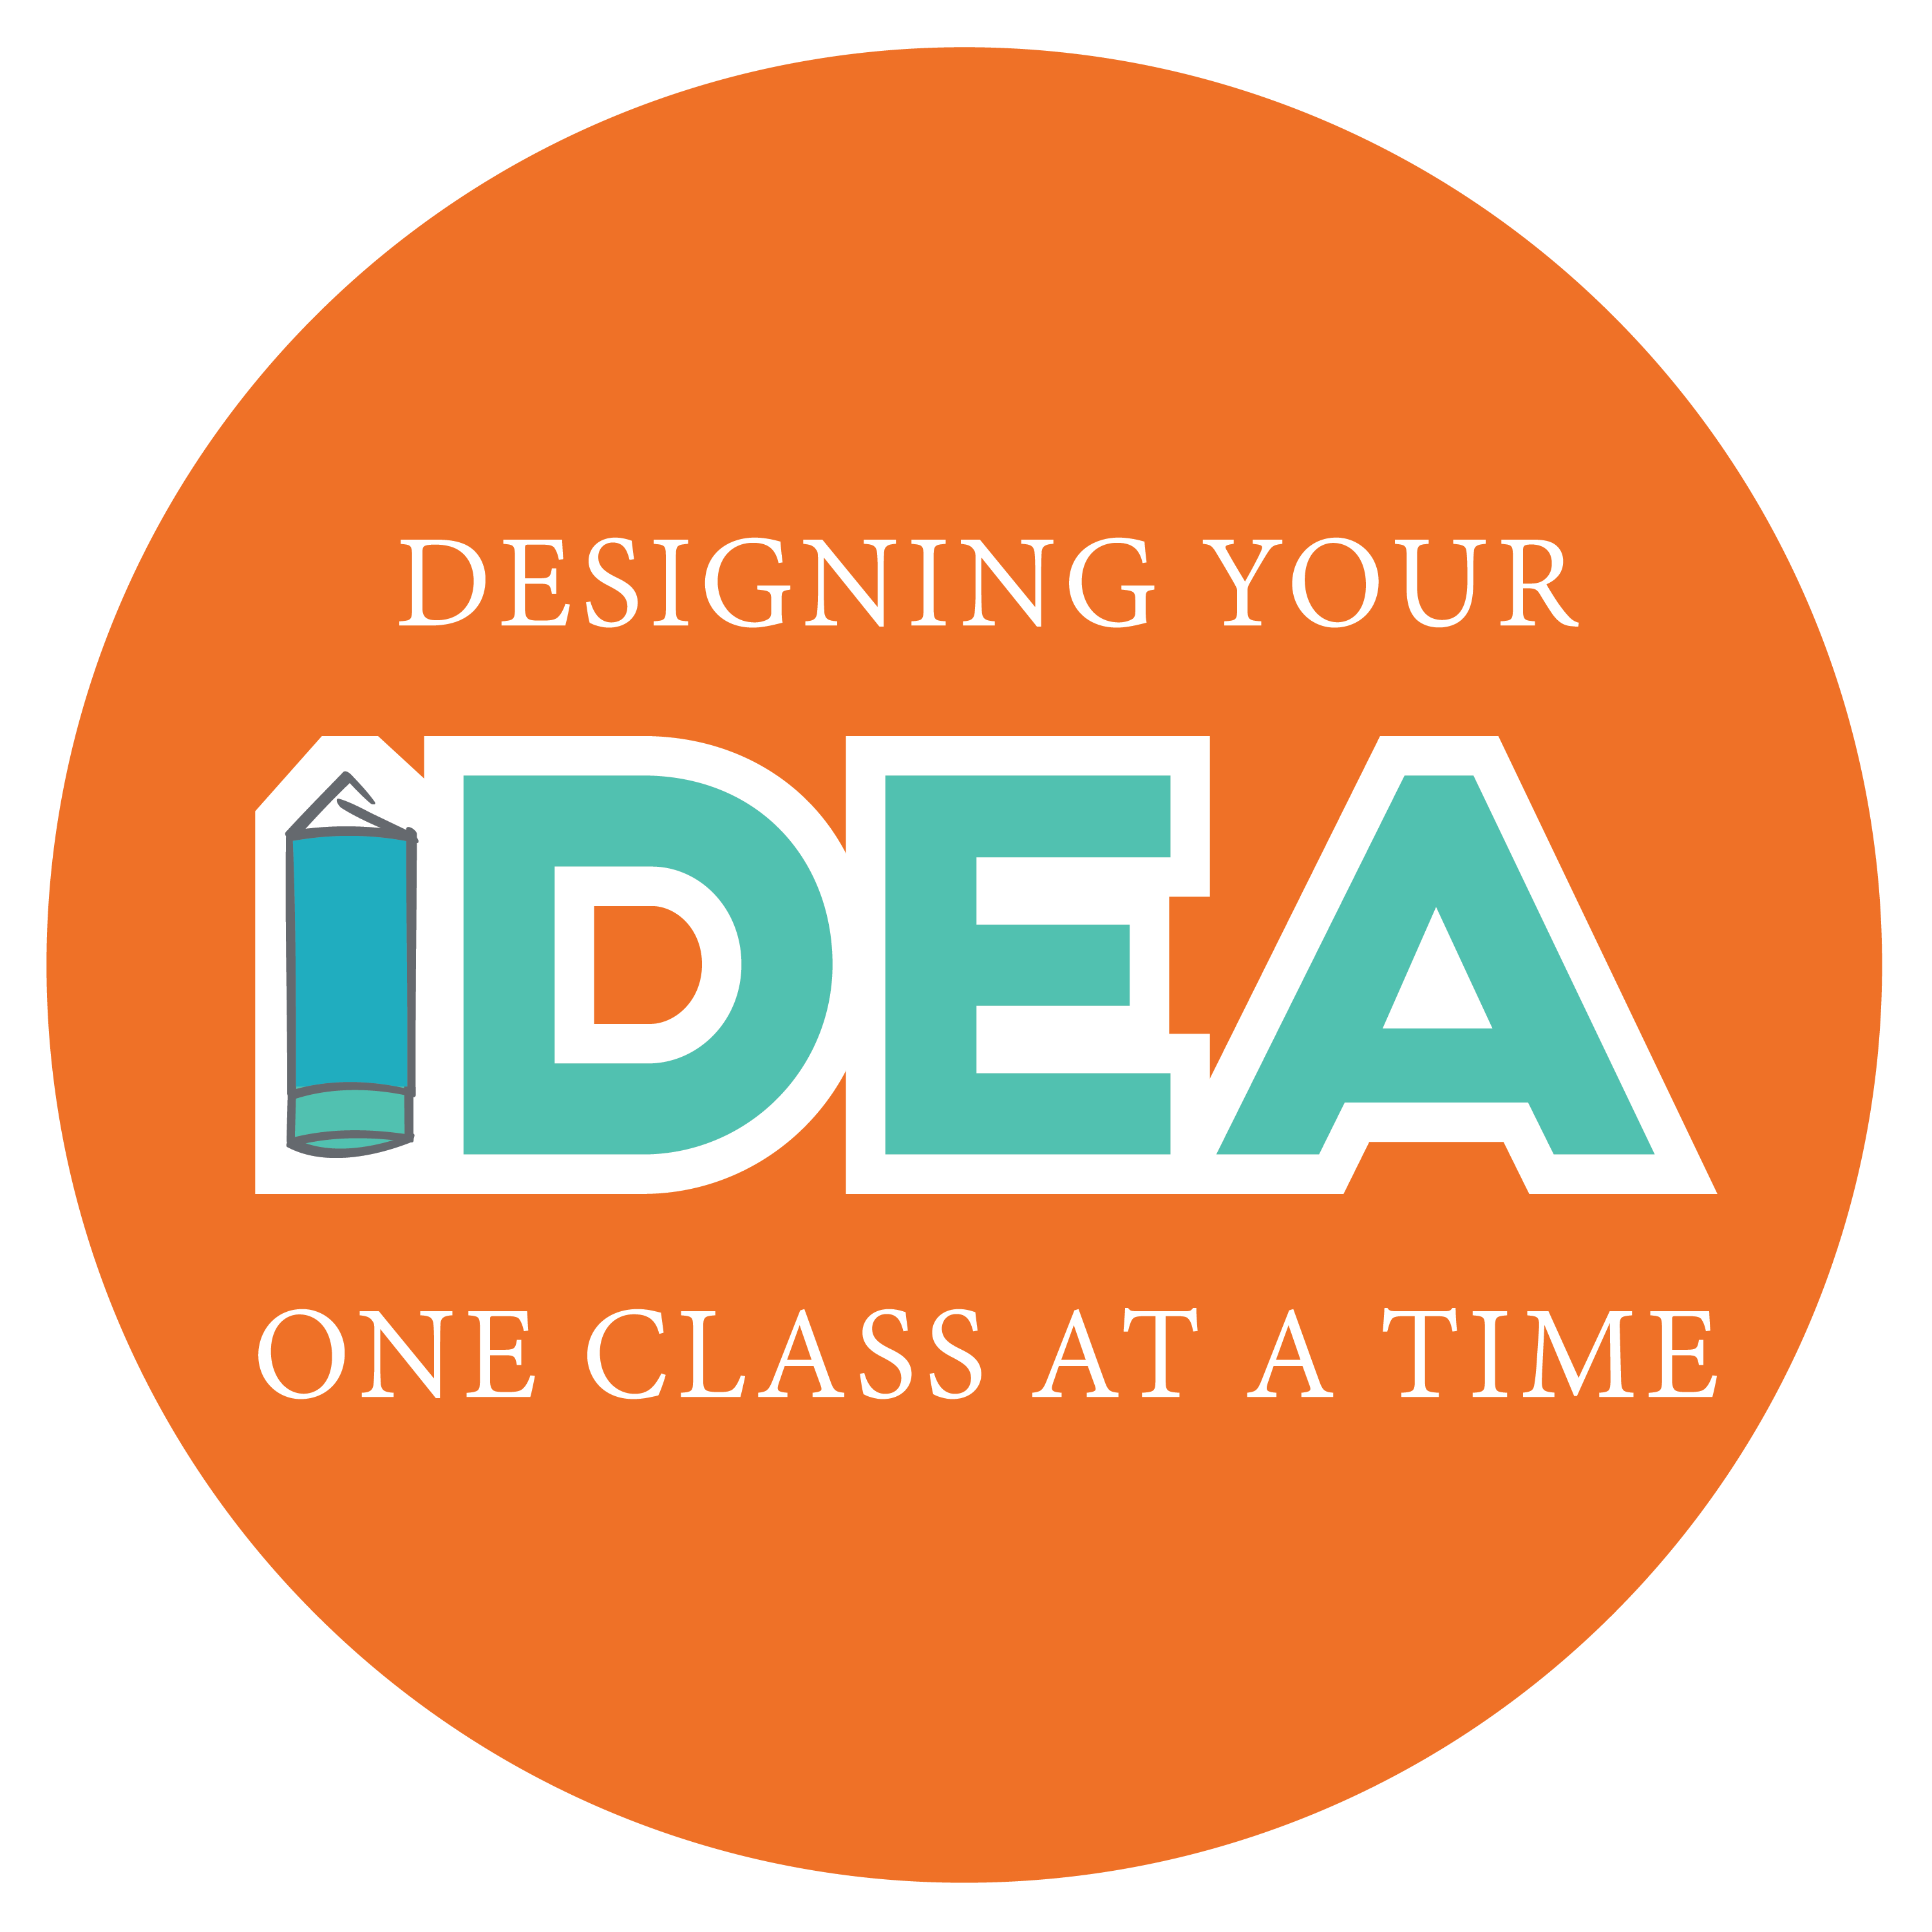 Creating Your Classroom Tagline